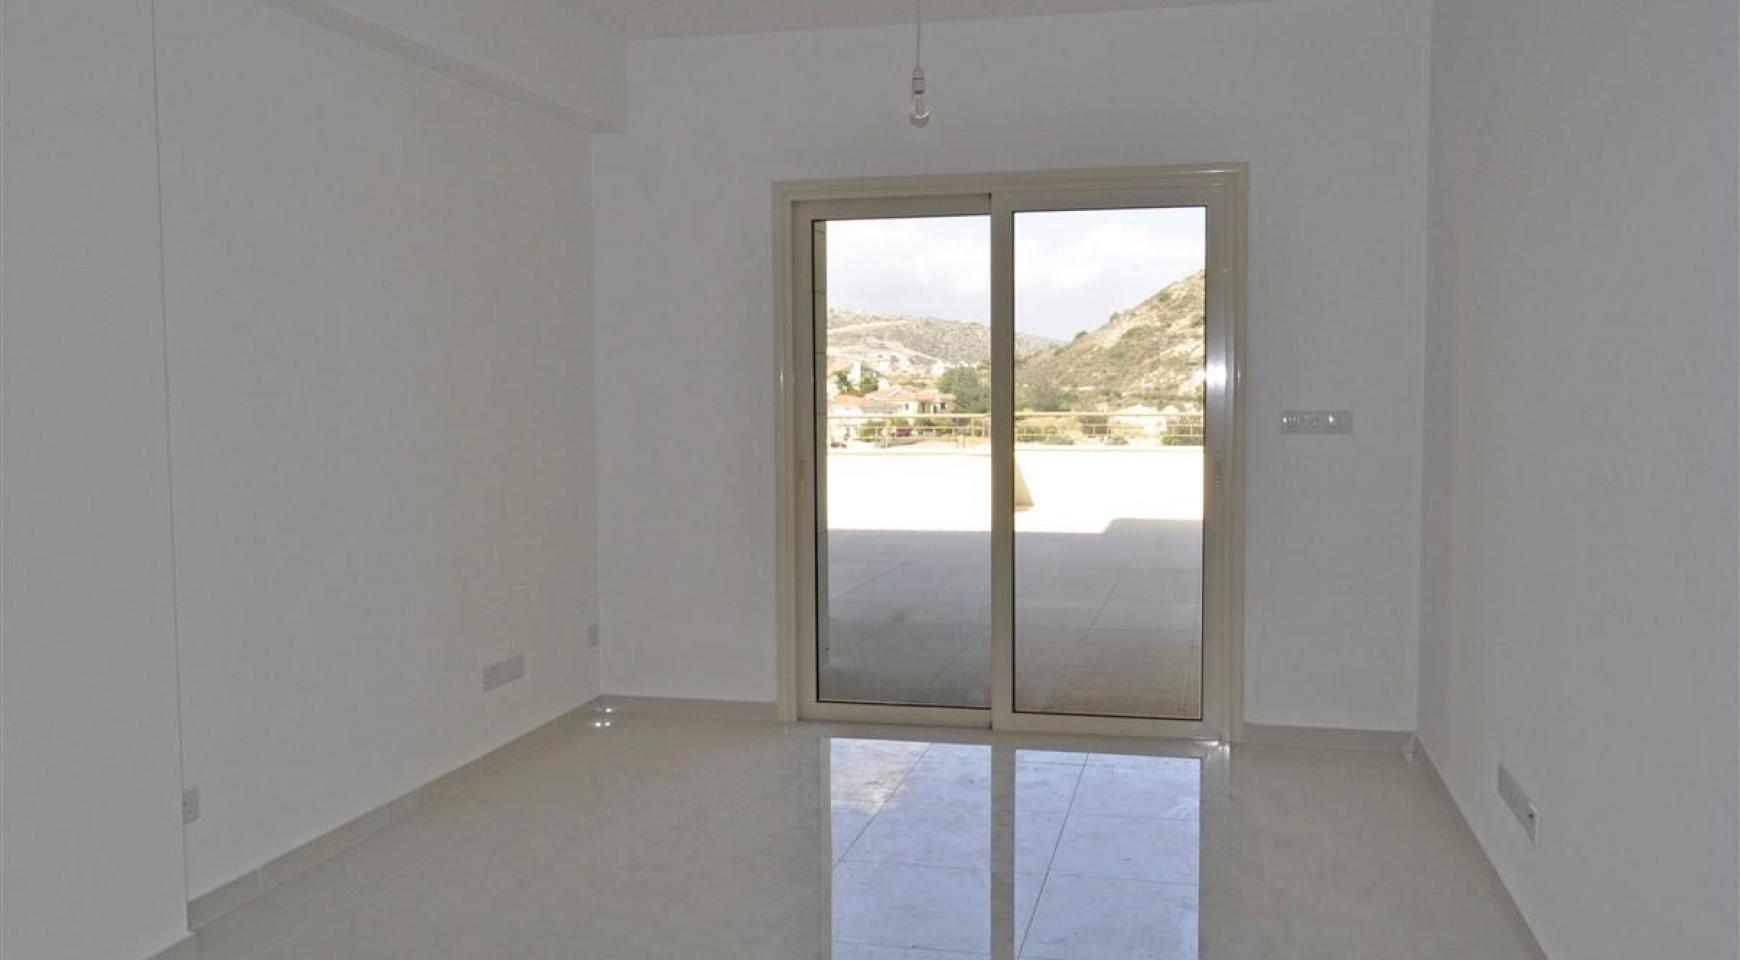 2 Bedroom Apartment with Amazing Views in Agios Athanasios - 9